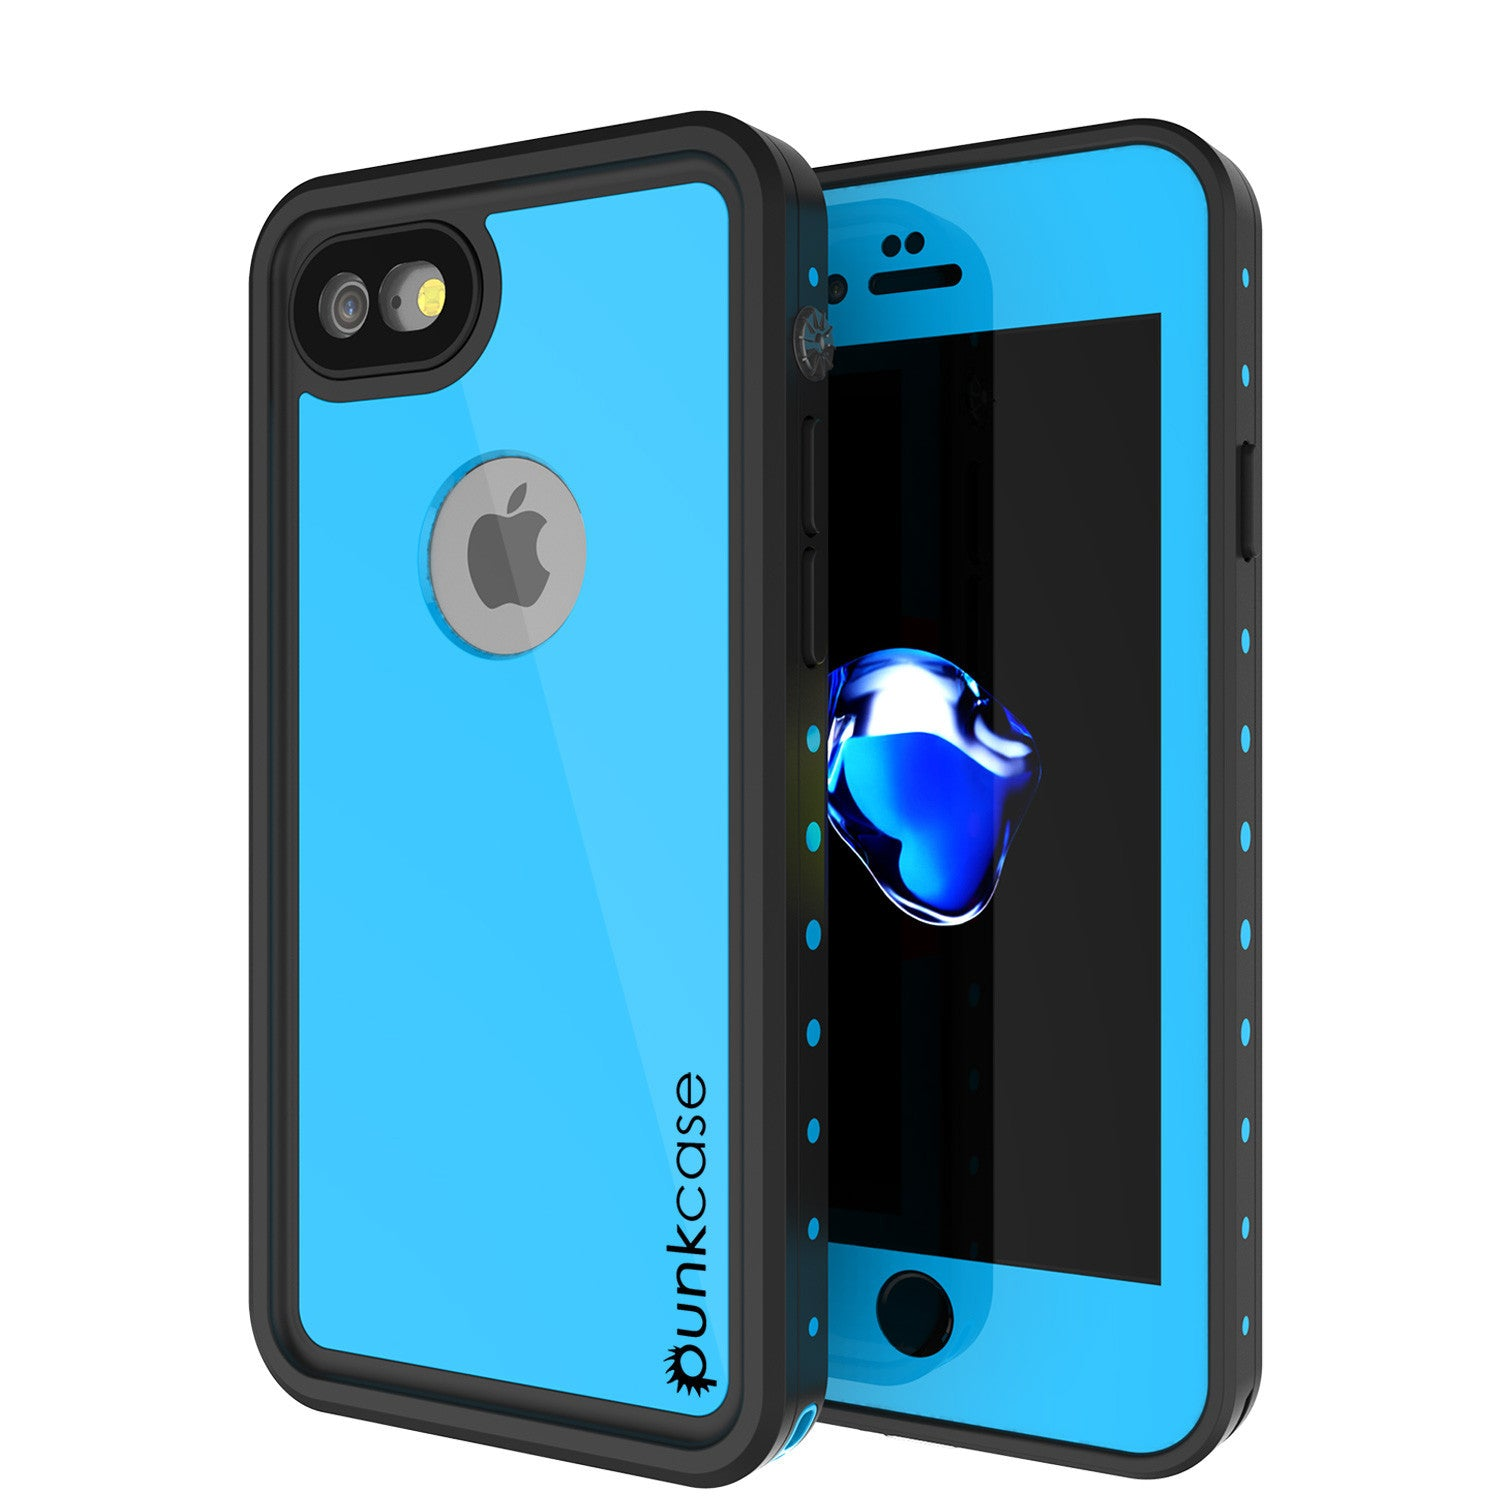 PUNKCASE - Studstar Series Snowproof Case for Apple IPhone 7 | Light Blue